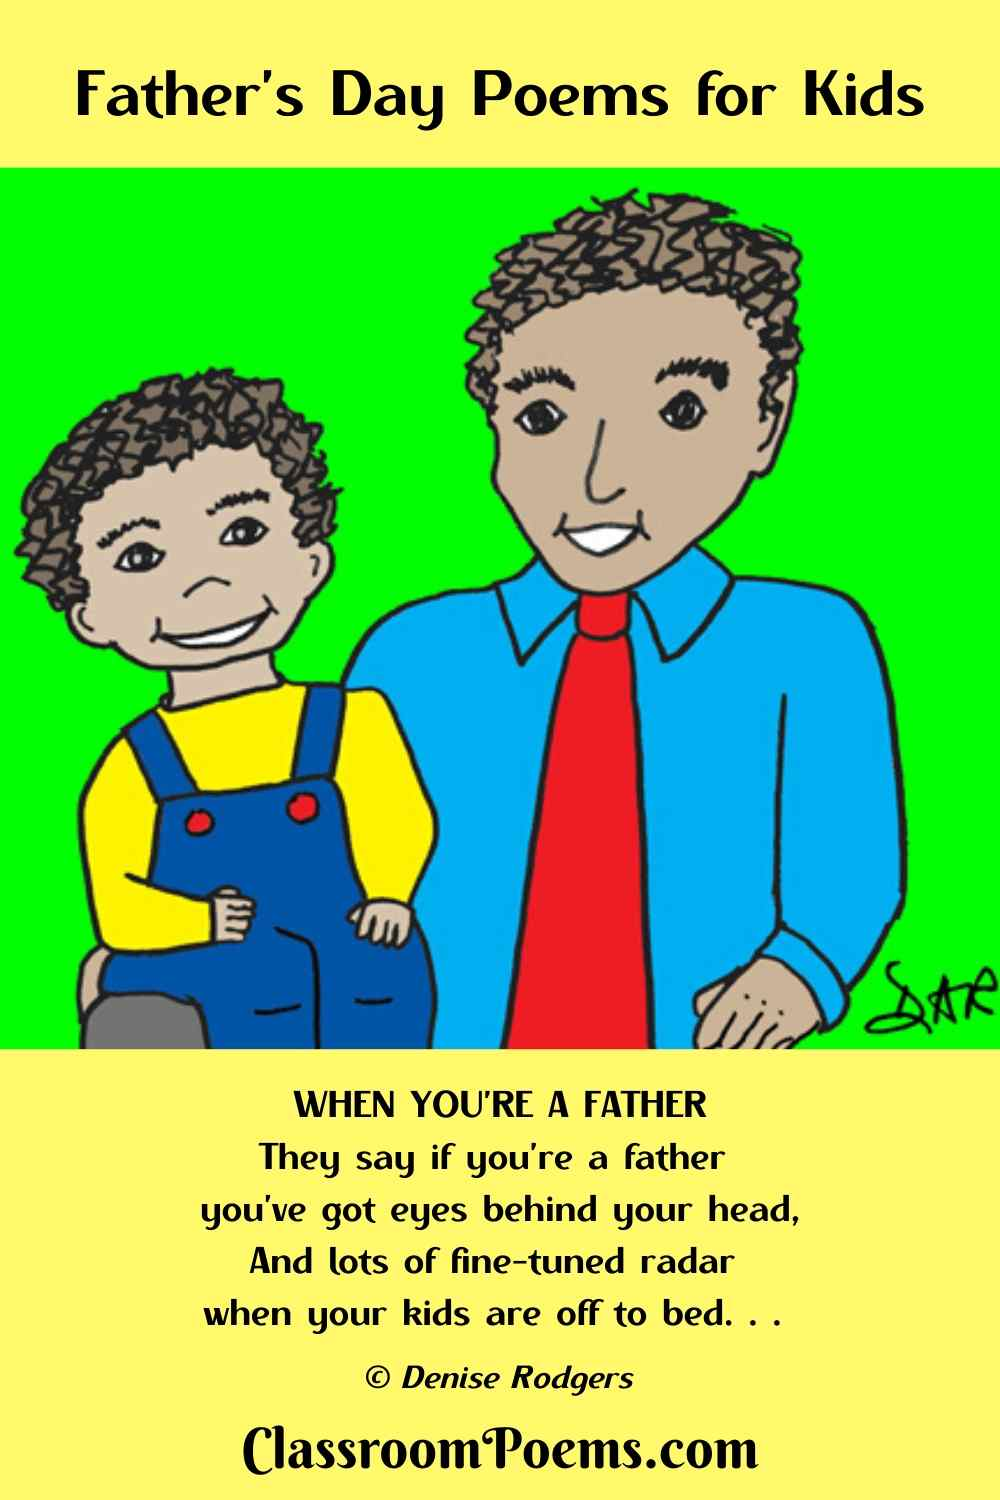 Father and son Father's Day poem for kids by Denise Rodgers on ClassroomPoems.com.